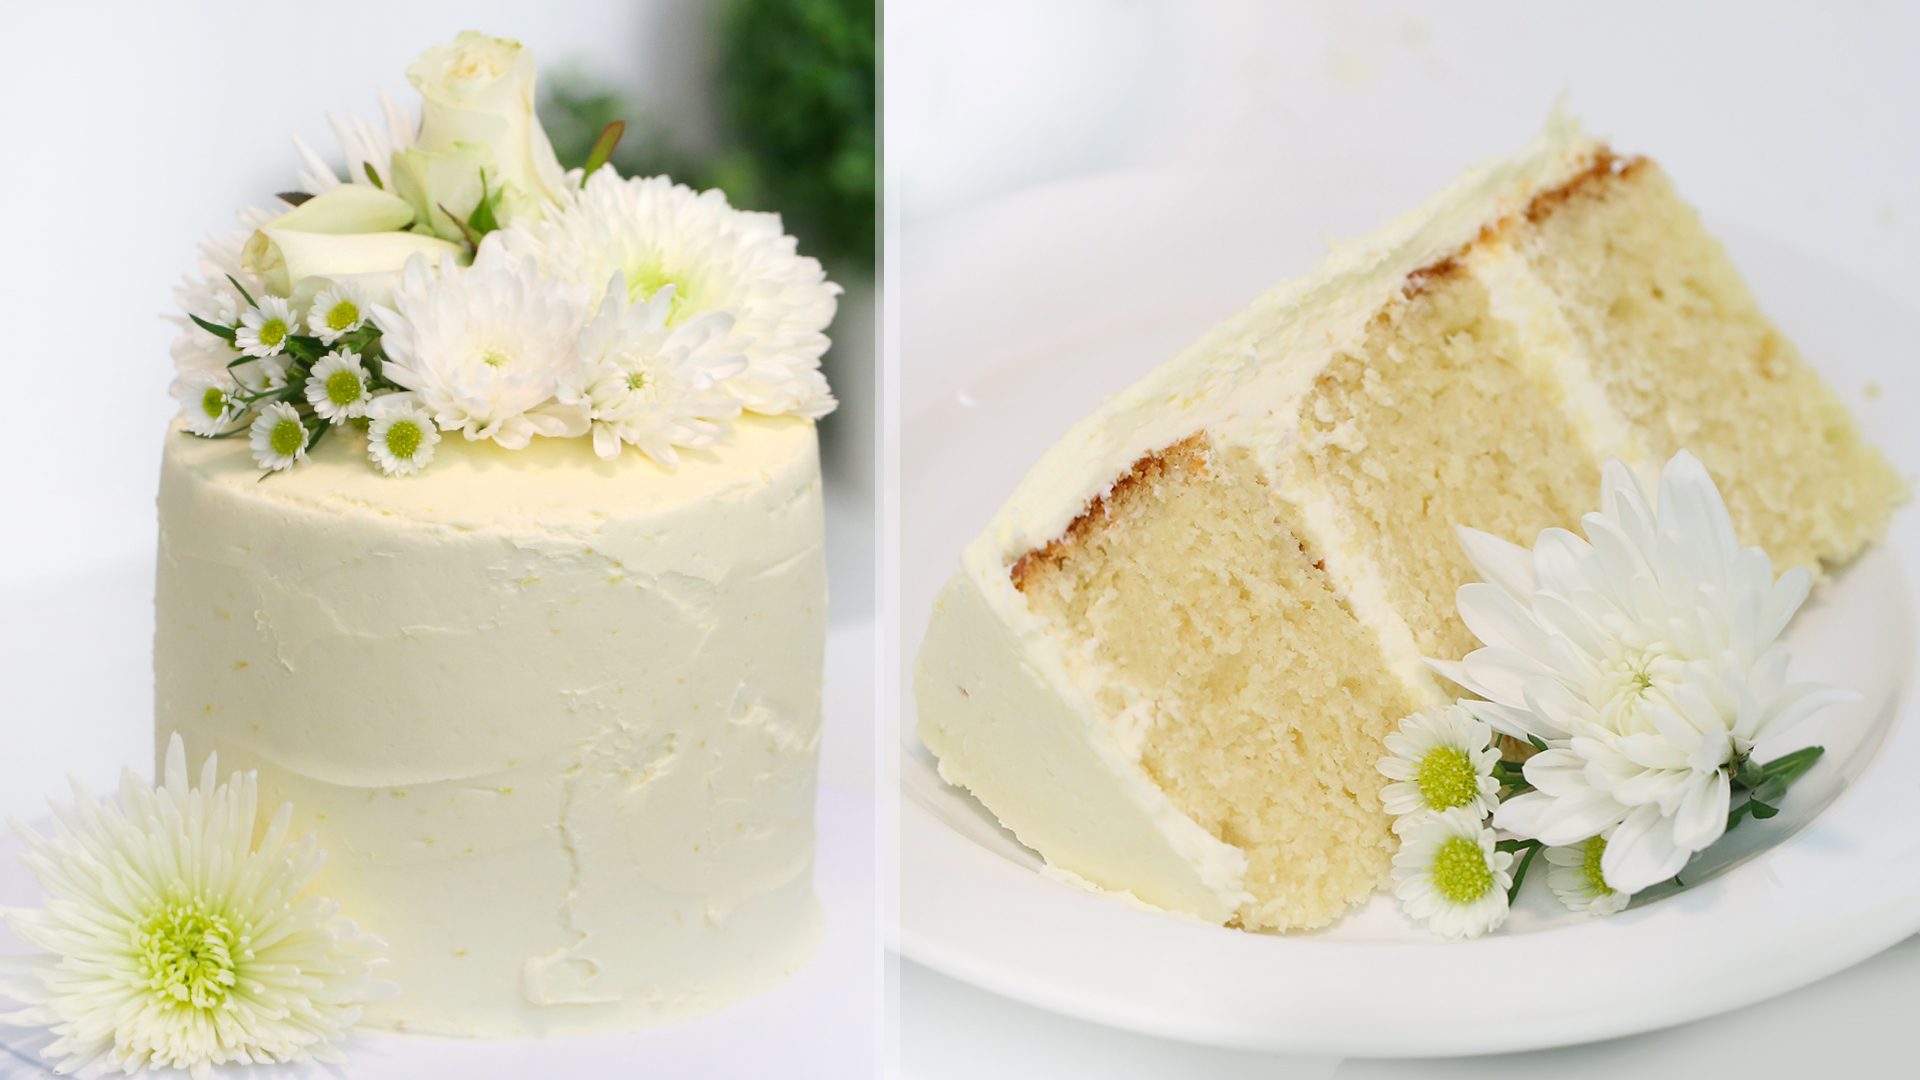 lemon elderflower wedding cake recipe pankobunny how to make the royal wedding cake lemon 16797